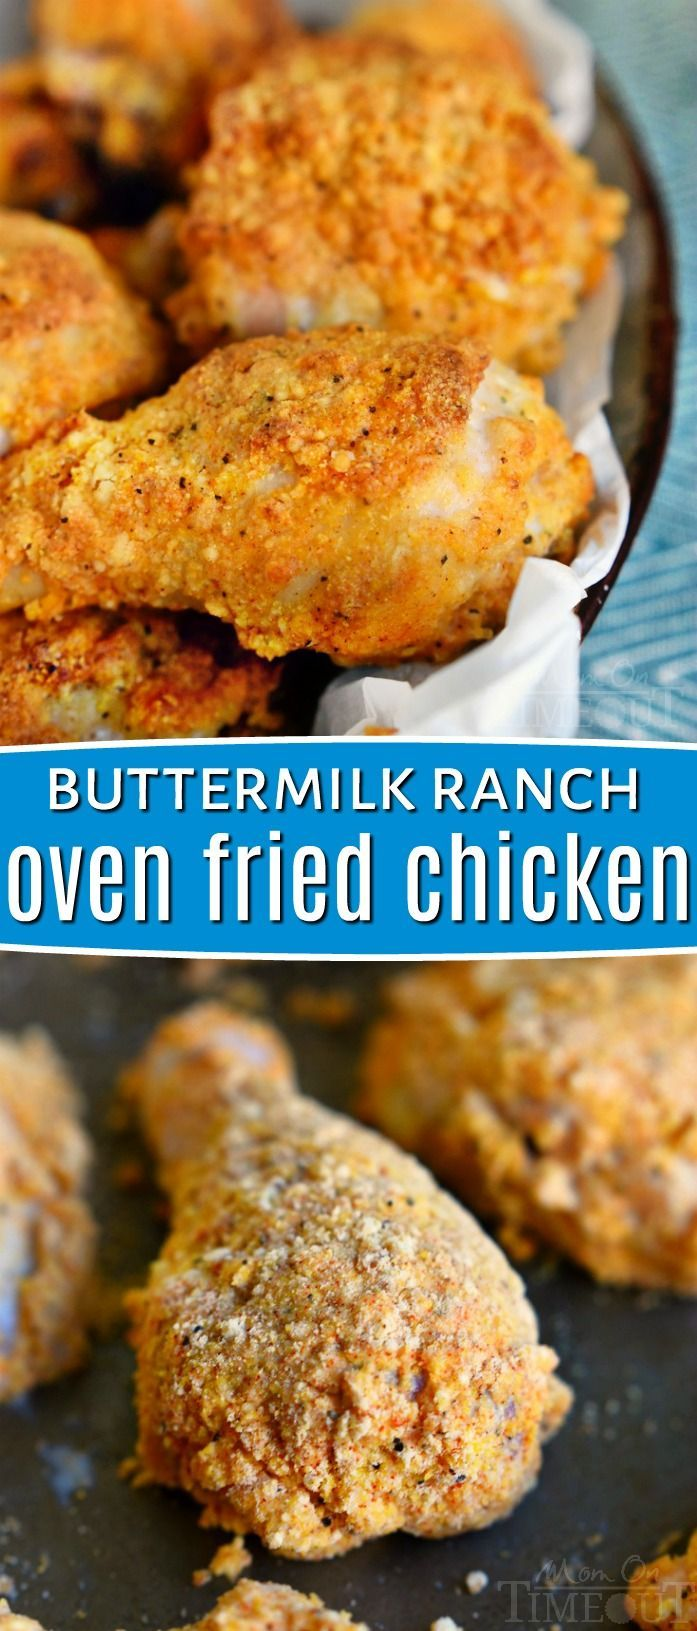 This Buttermilk Ranch Oven Fried Chicken Is Bound To Become A New Family Favorite This Recip Best Chicken Recipes Fries In The Oven Oven Fried Chicken Recipes